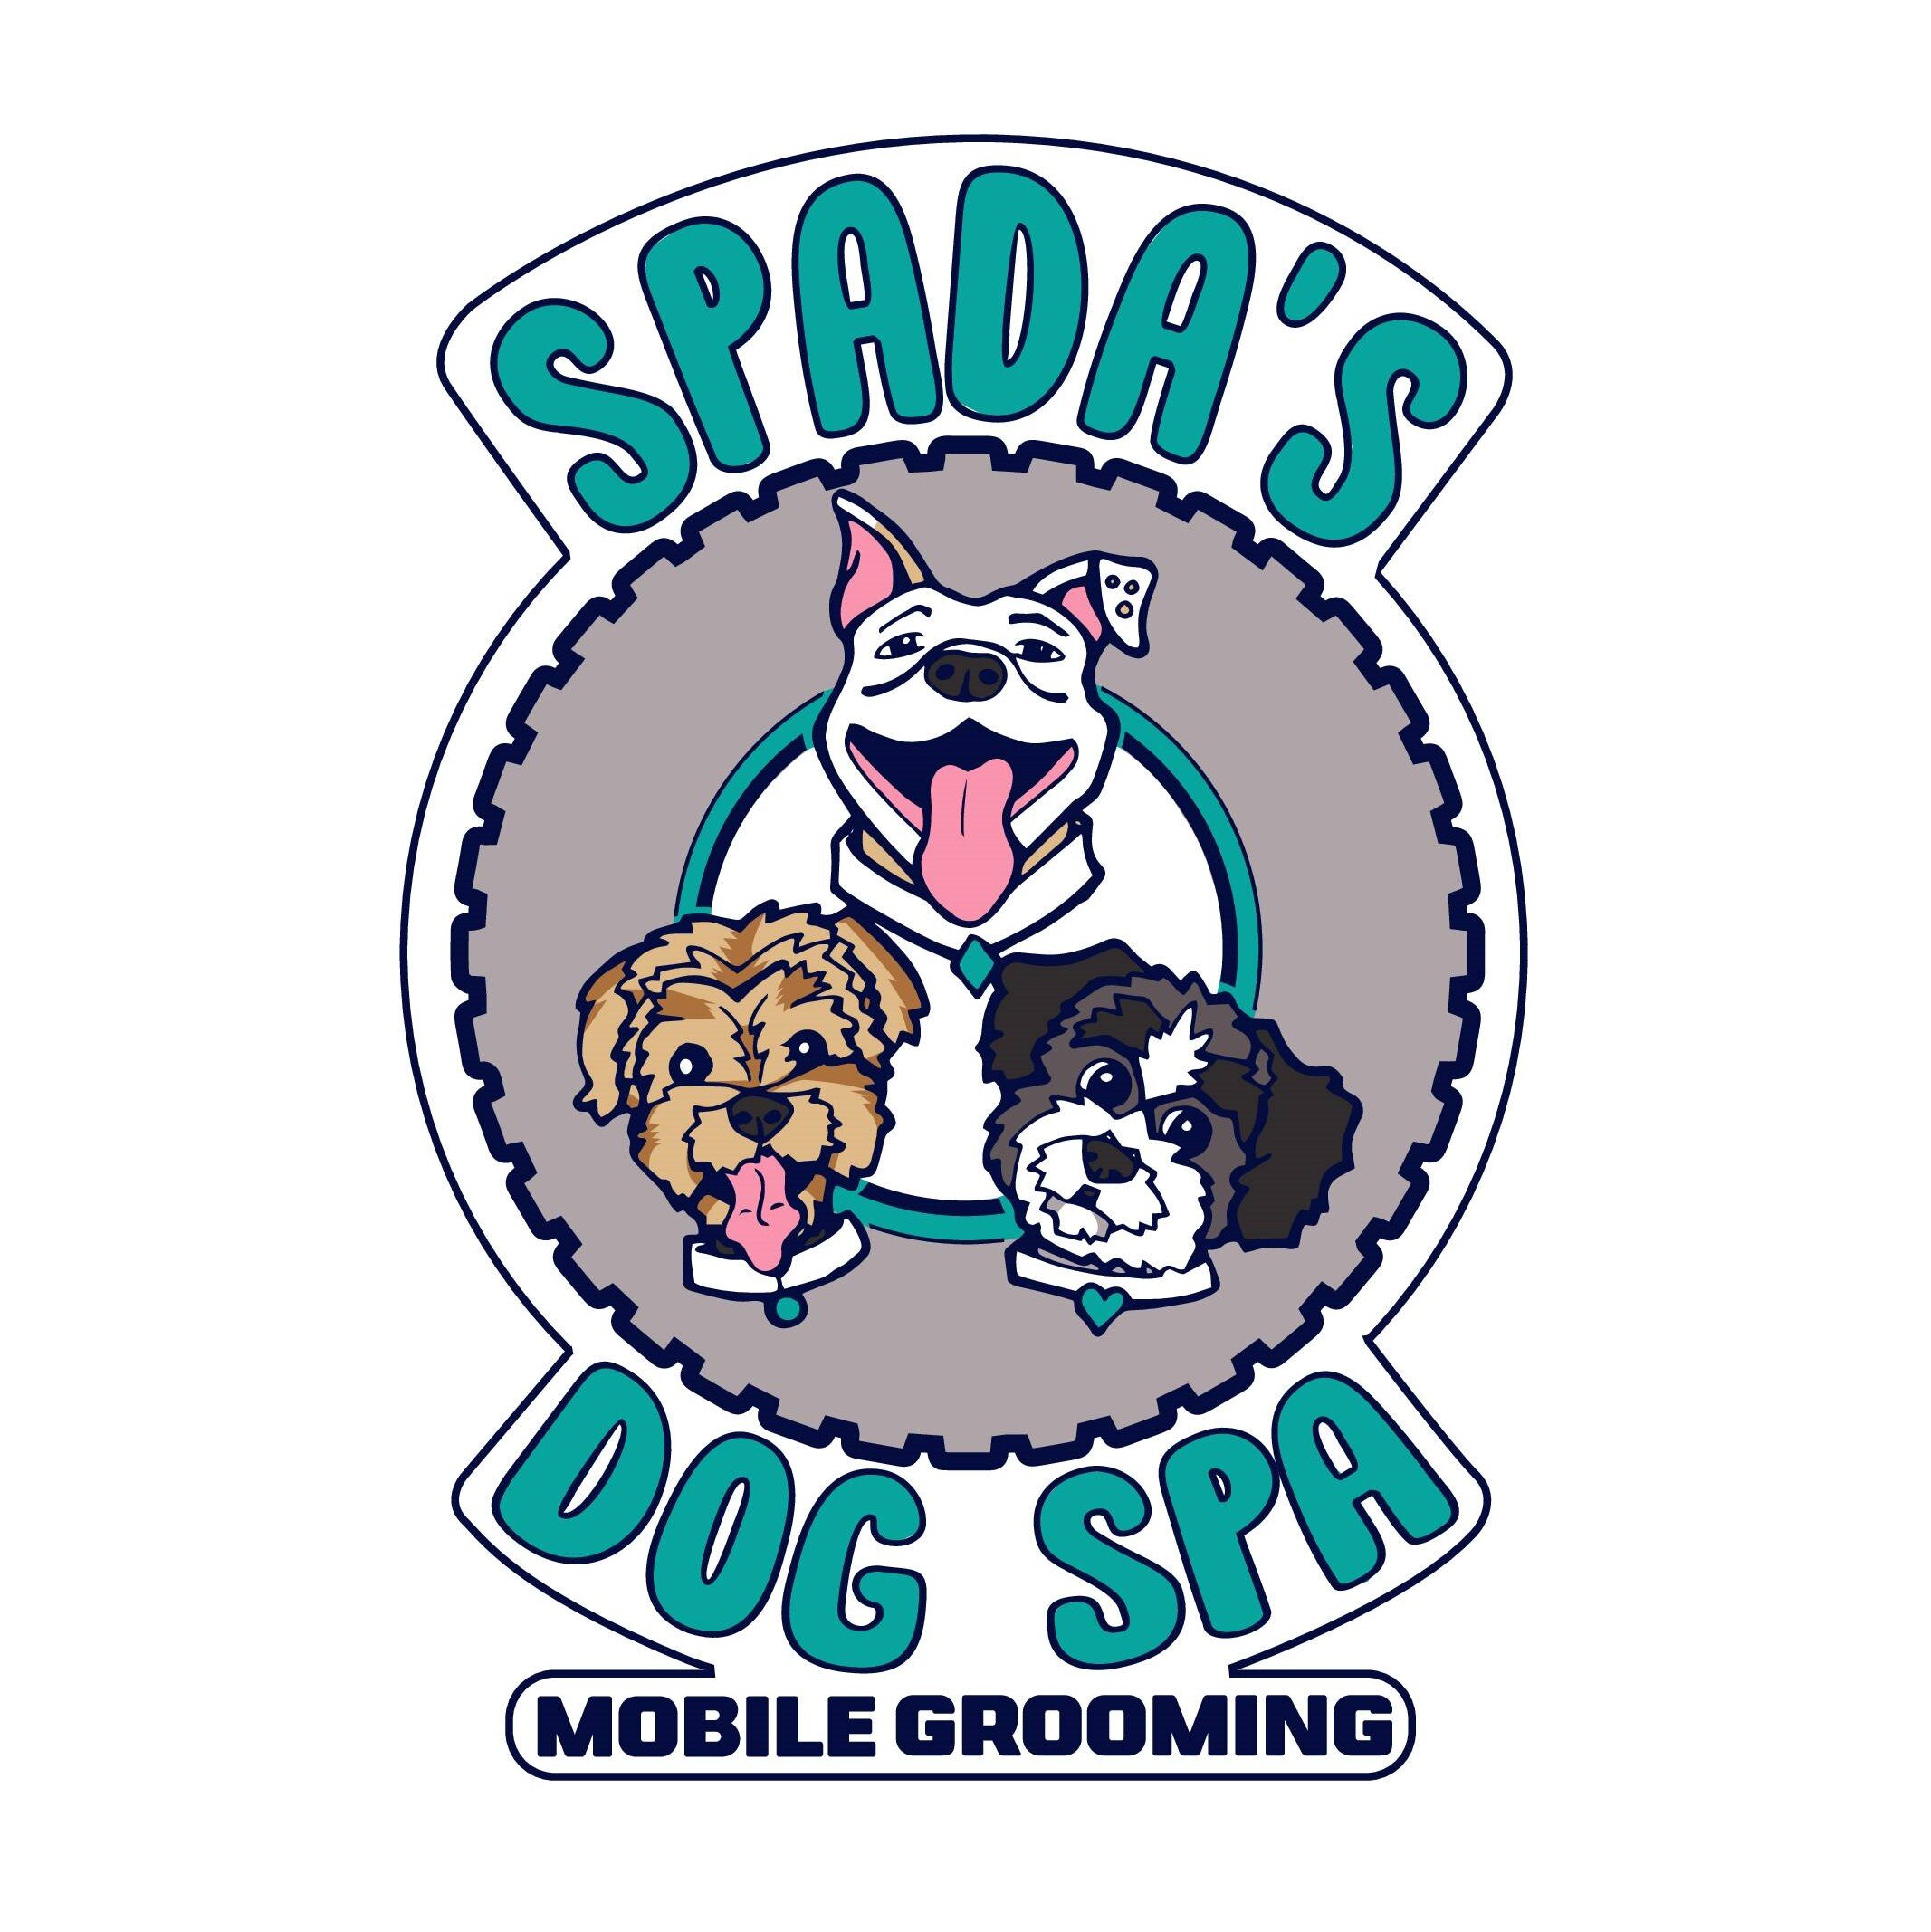 Mobile Dog Grooming based in King of Prussia, PA